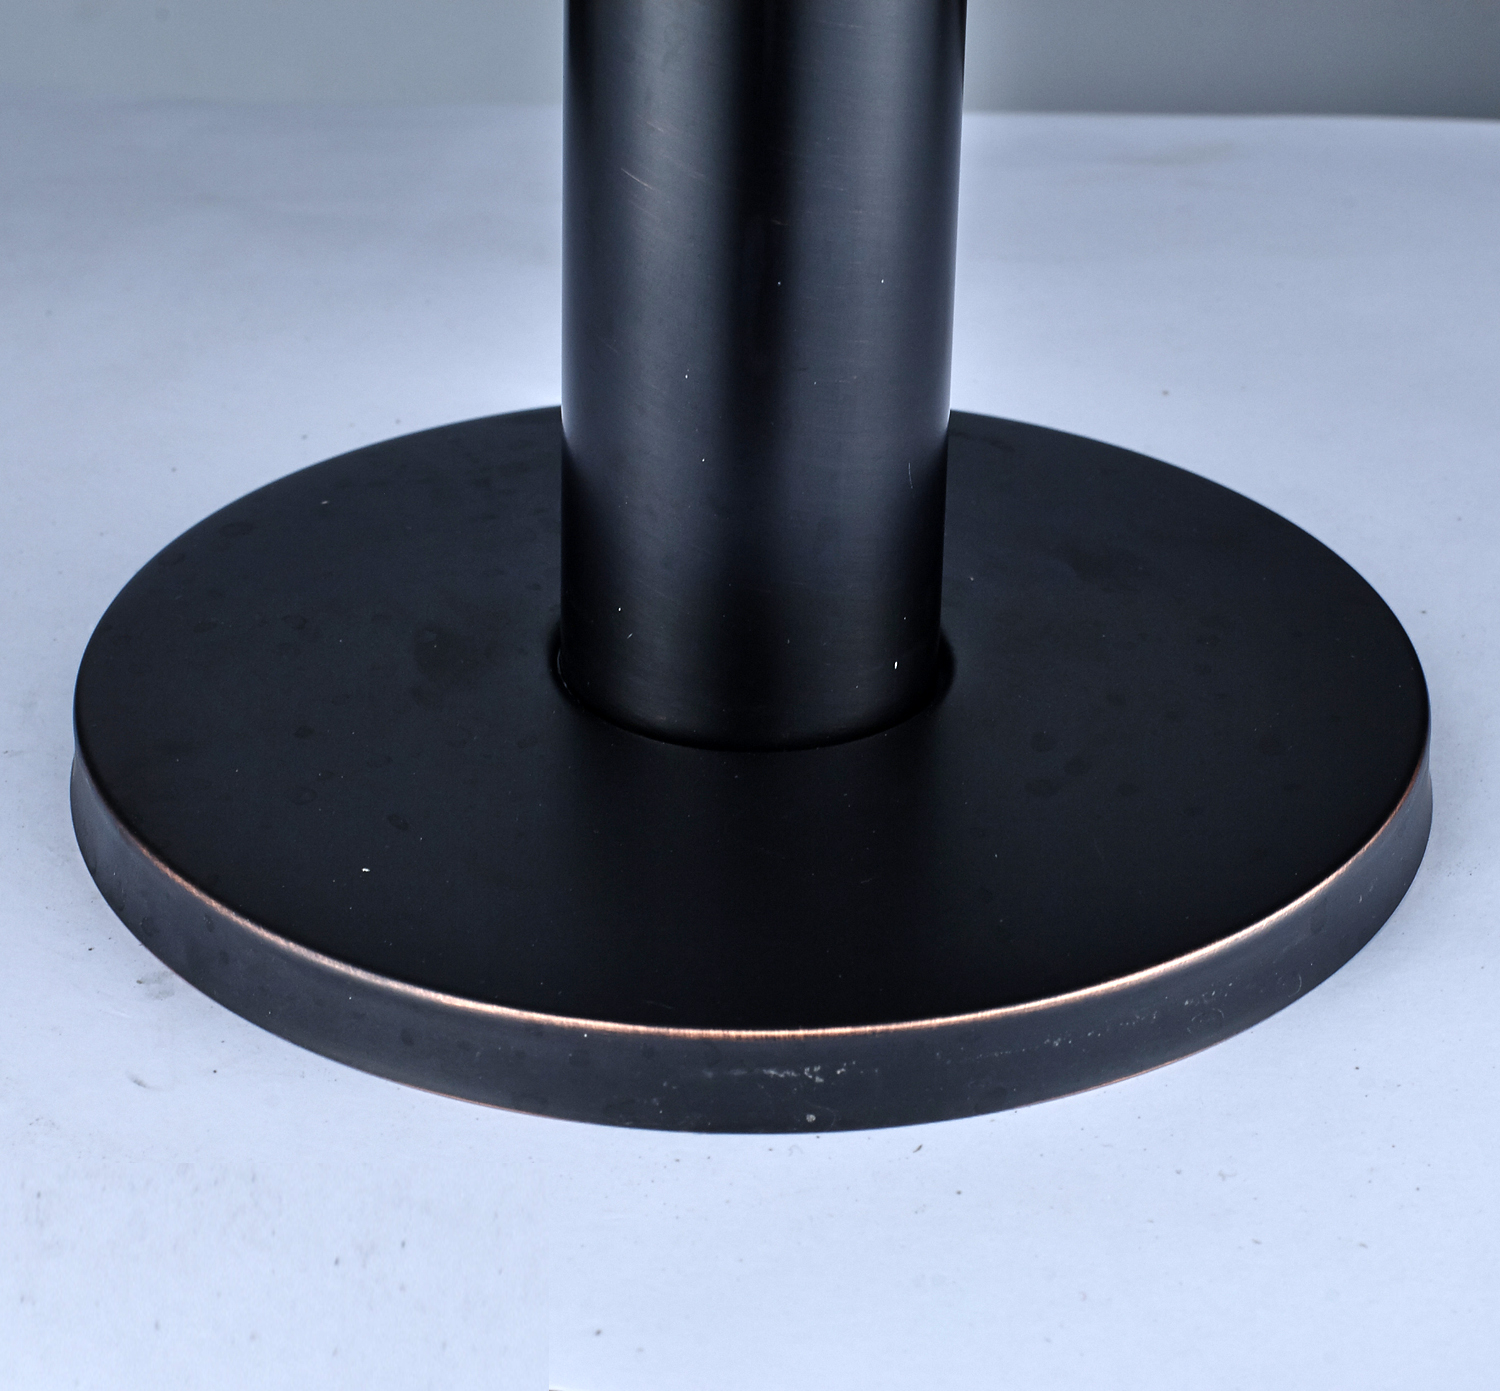 Free Standing Bathtub Faucet Filler Oil Rubbed Bronze Floor Mounted ...